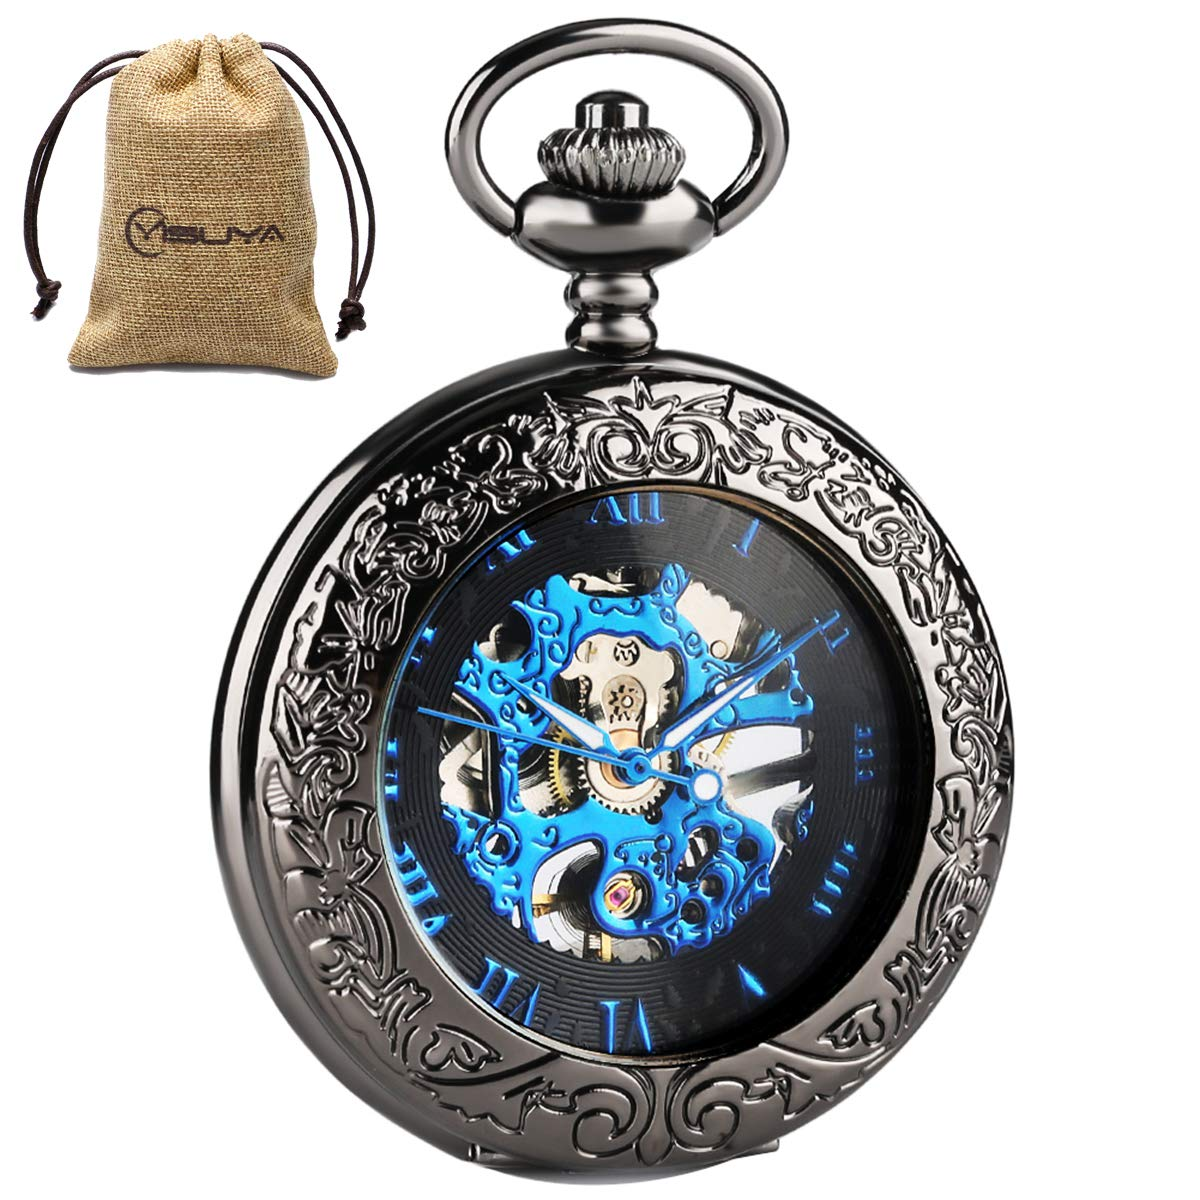 Black Skeleton Mechanical Pocket Watch Hand Wind Roman Numerals Classic Engraved with Chain